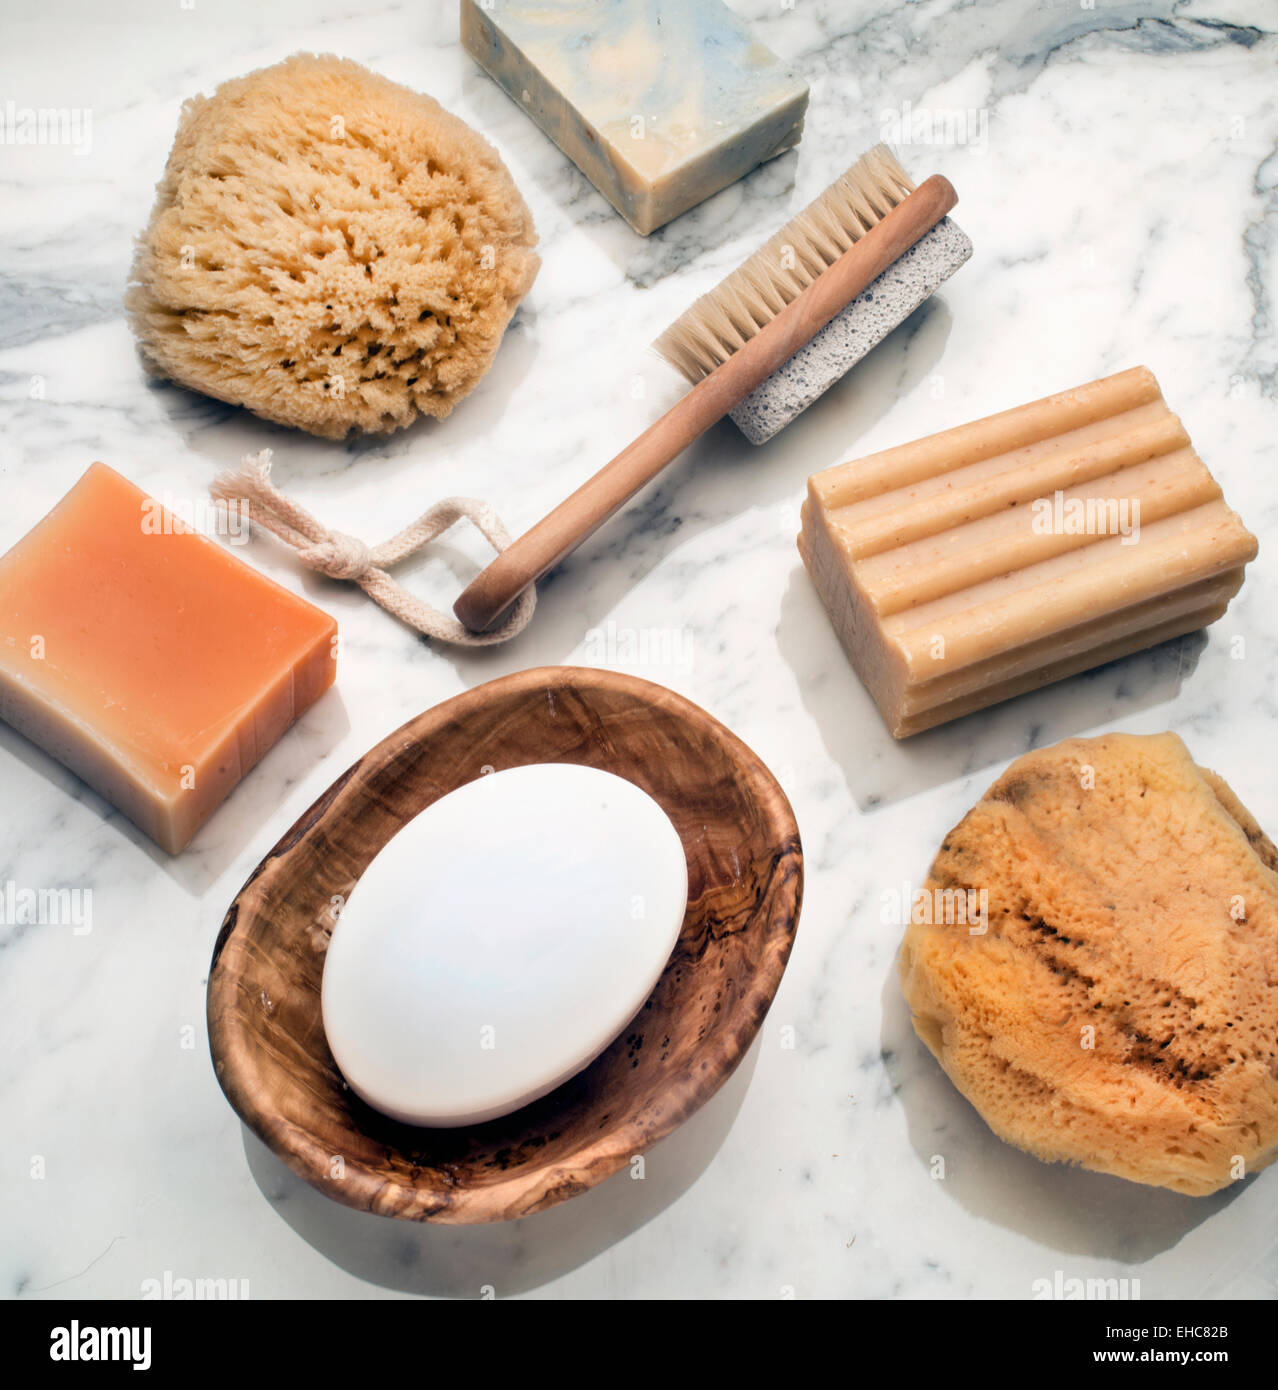 bath products - Stock Image